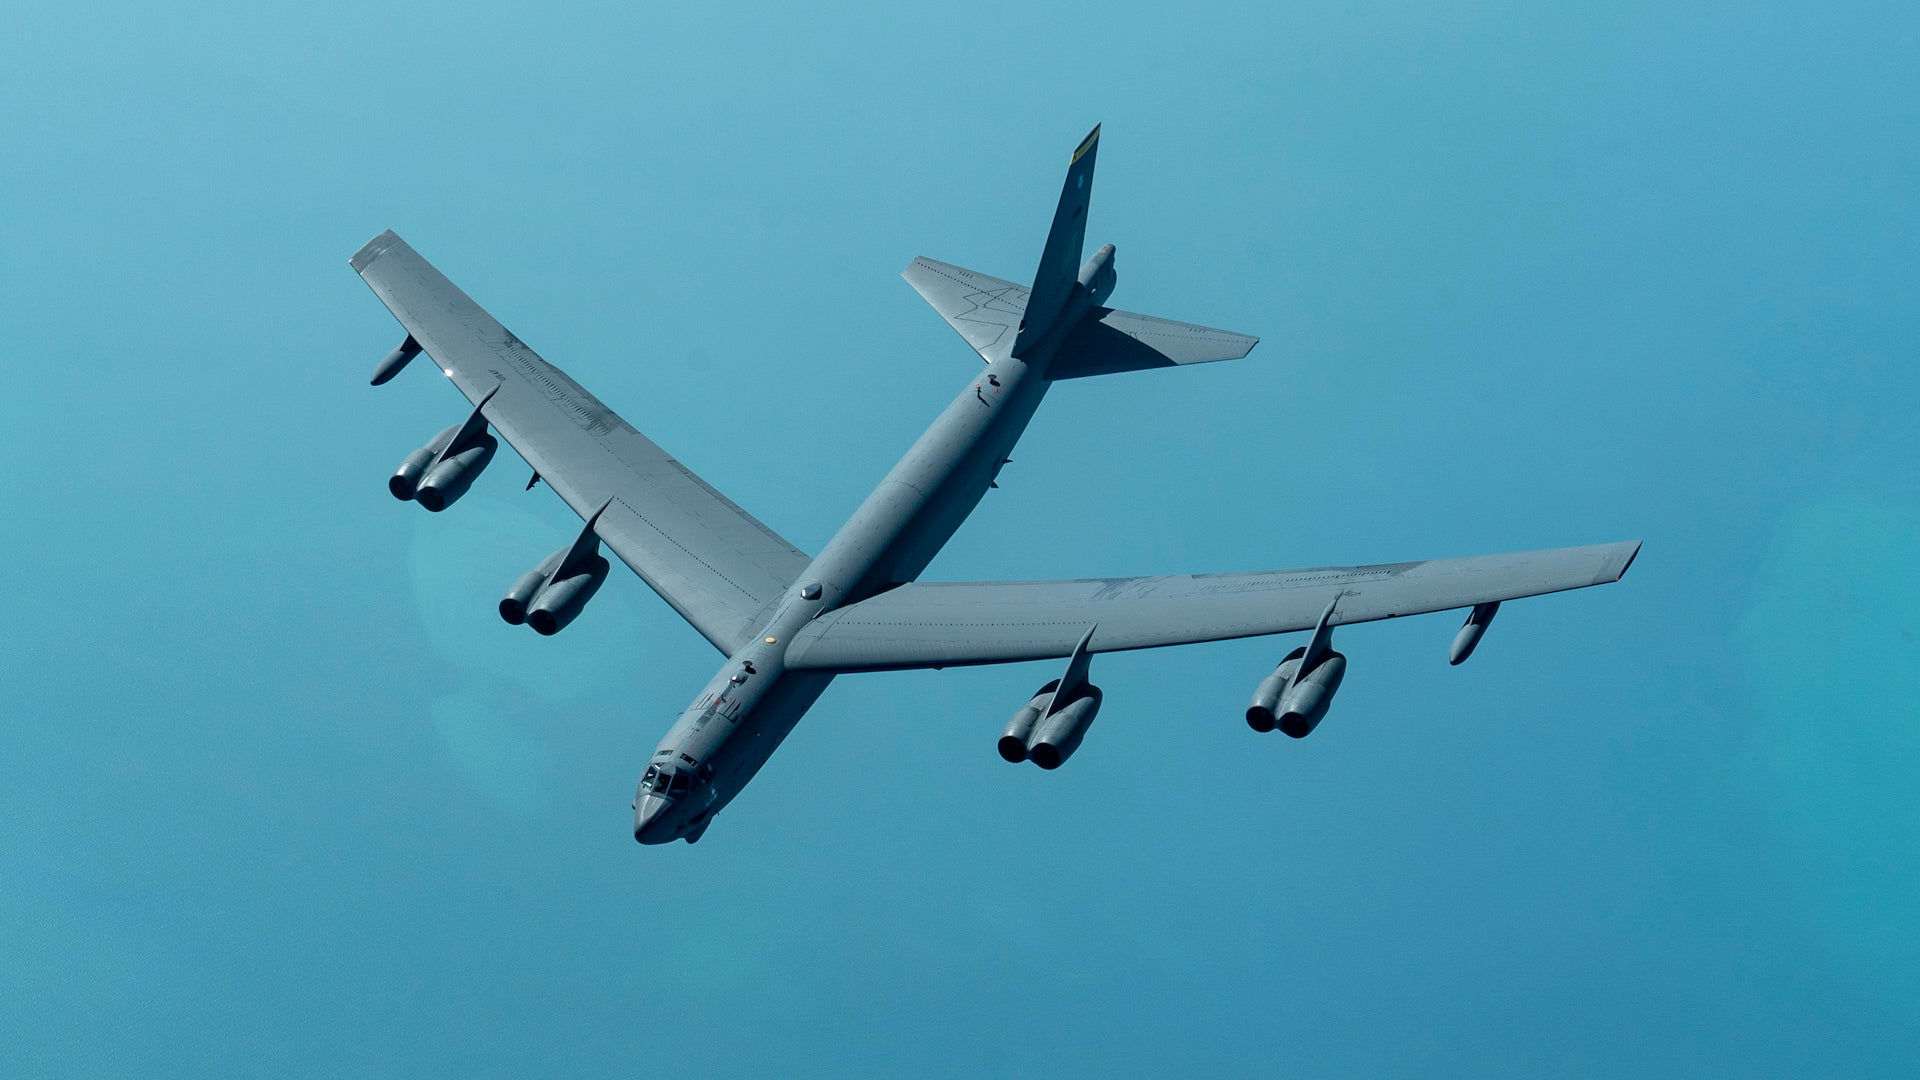 B-52s fly over the Middle East in another rattle of the saber at Iran